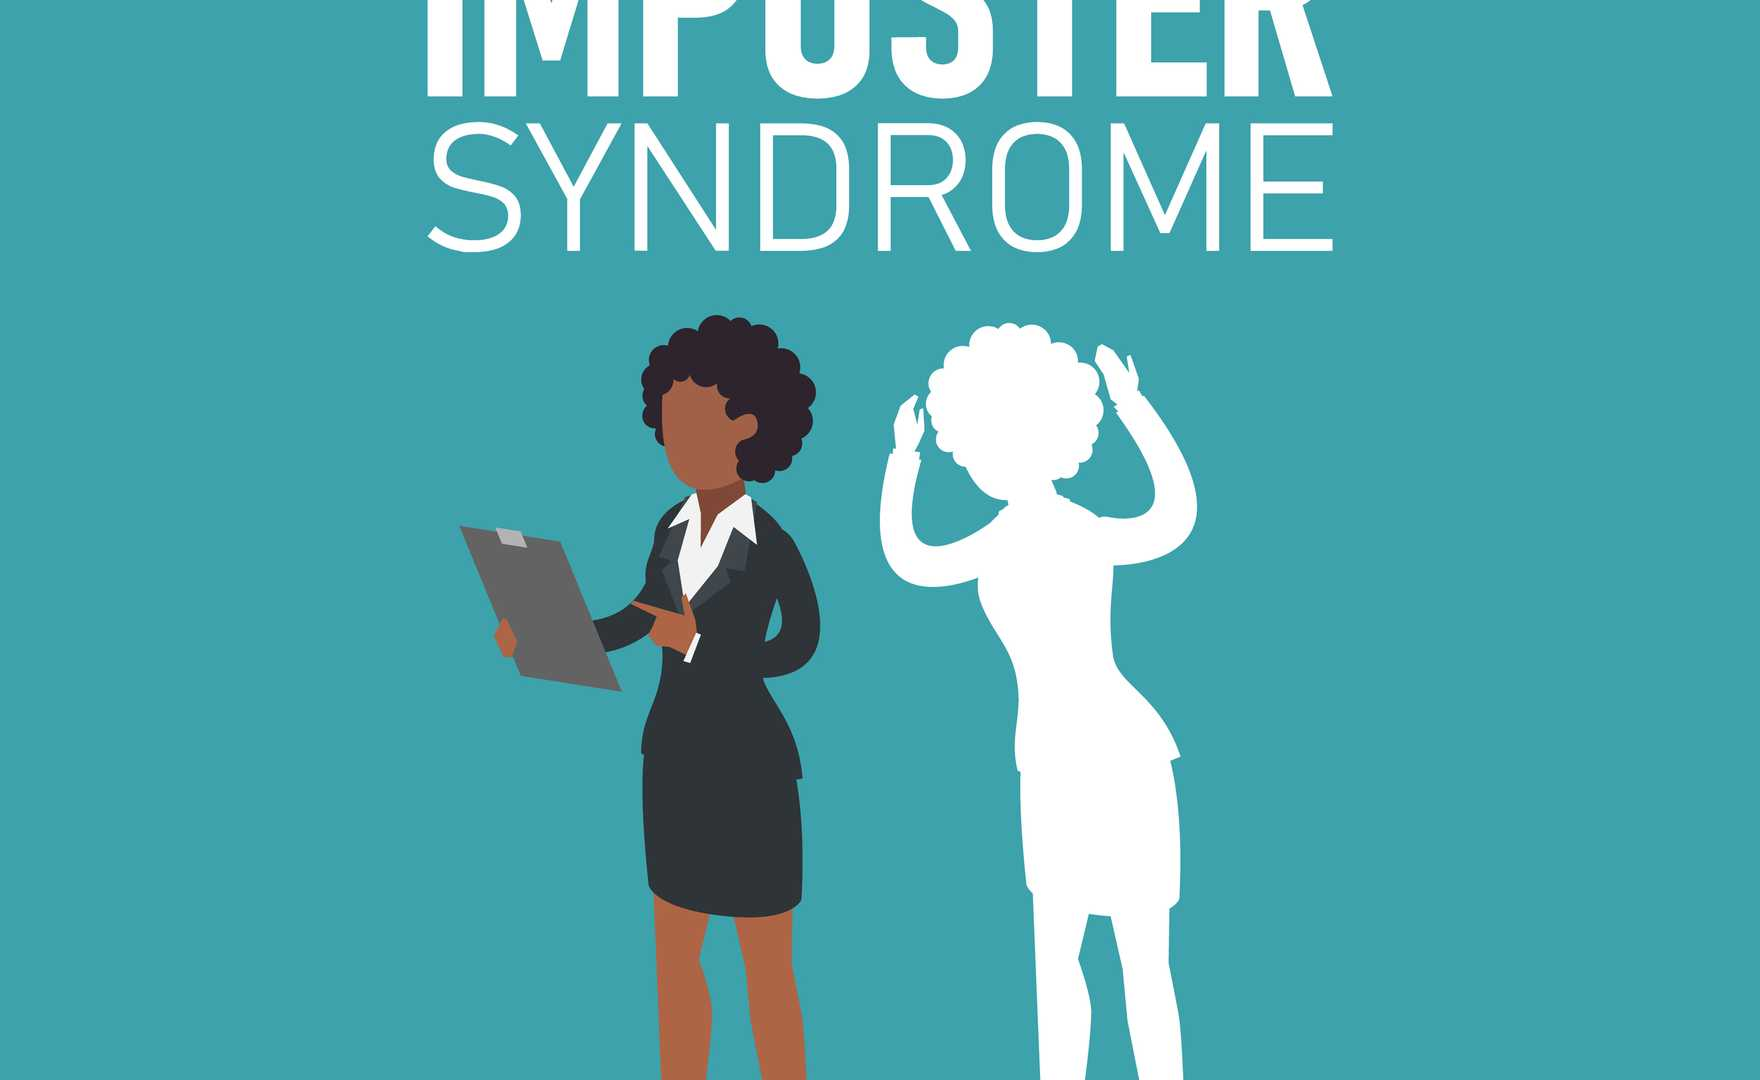 Exploring lived experiences of imposter syndrome